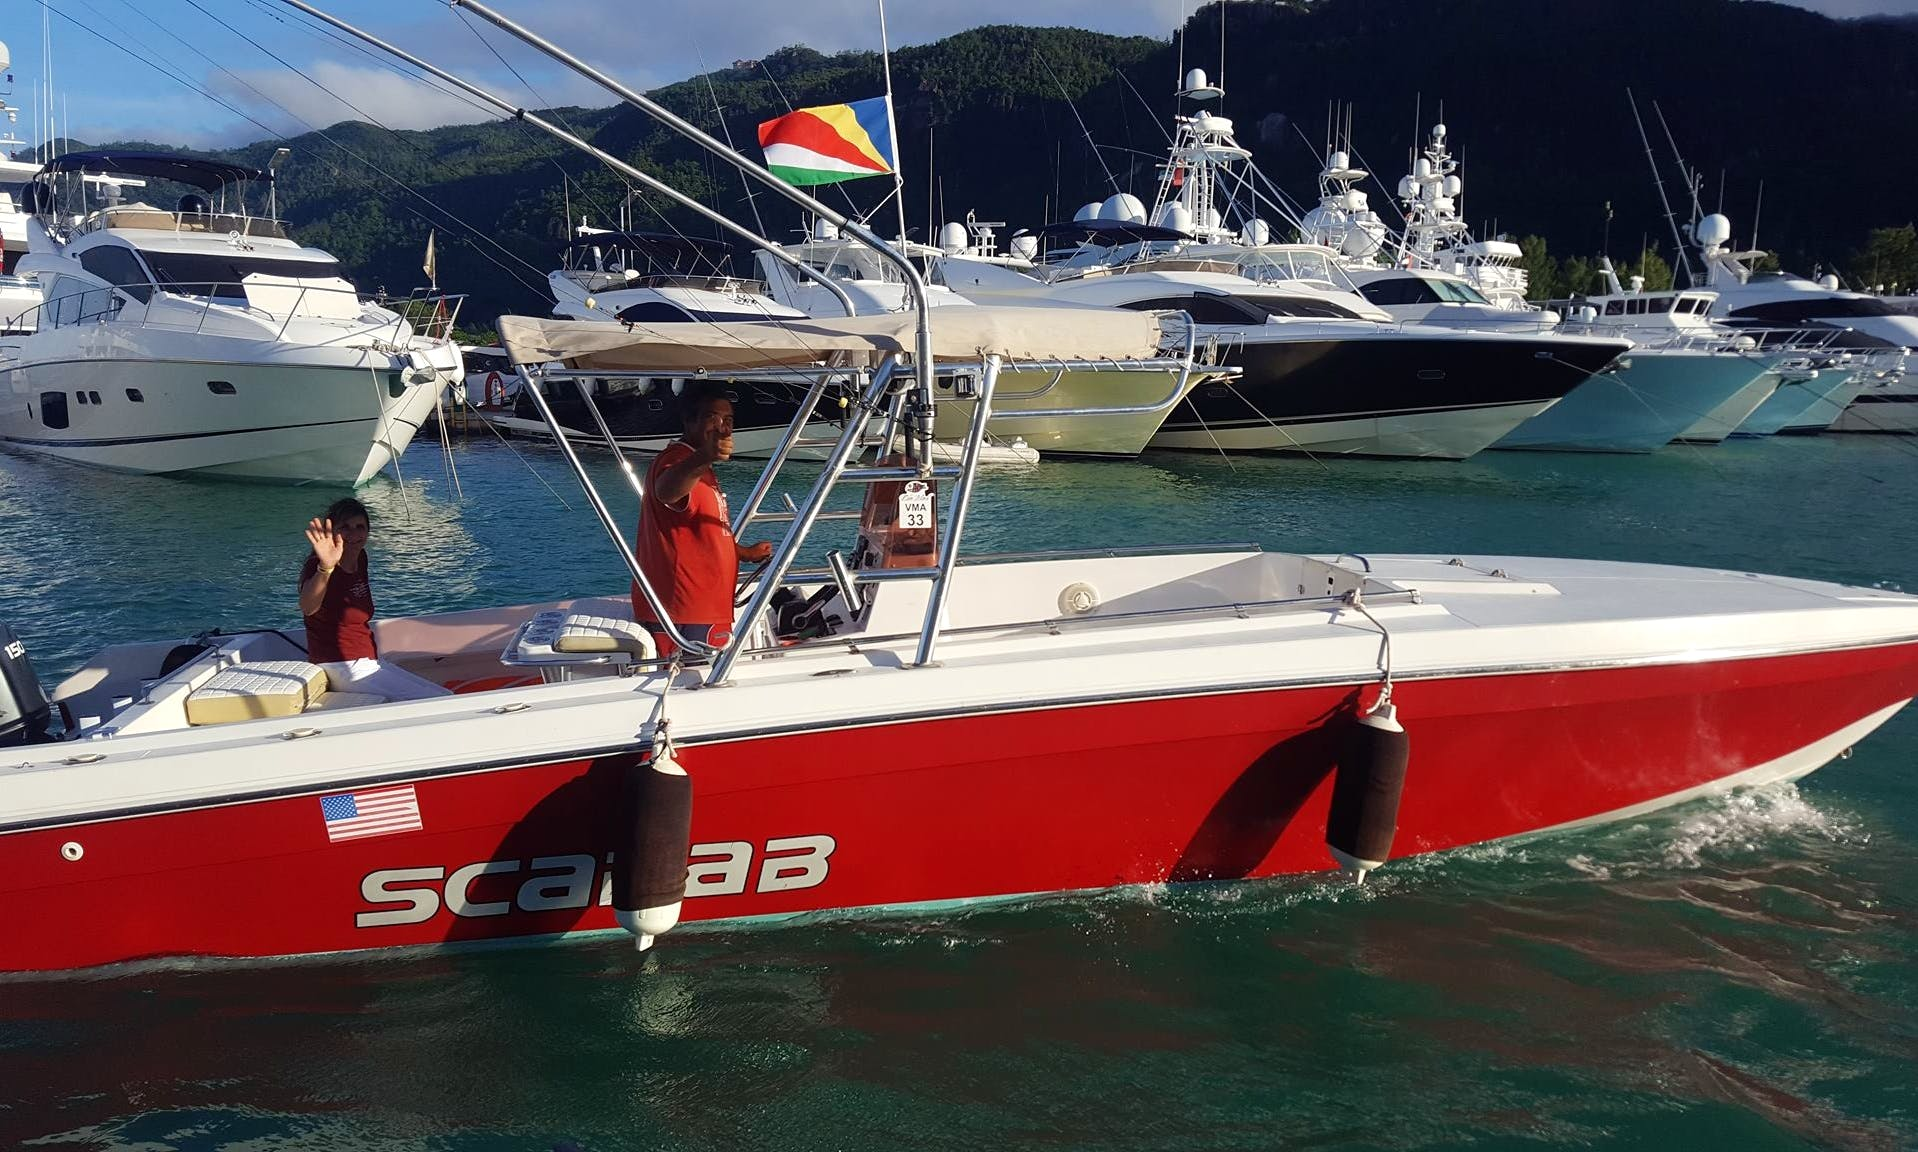 Another Level of Fishing Trip on a Scarab Speed Boat in Mahé, Seychelles